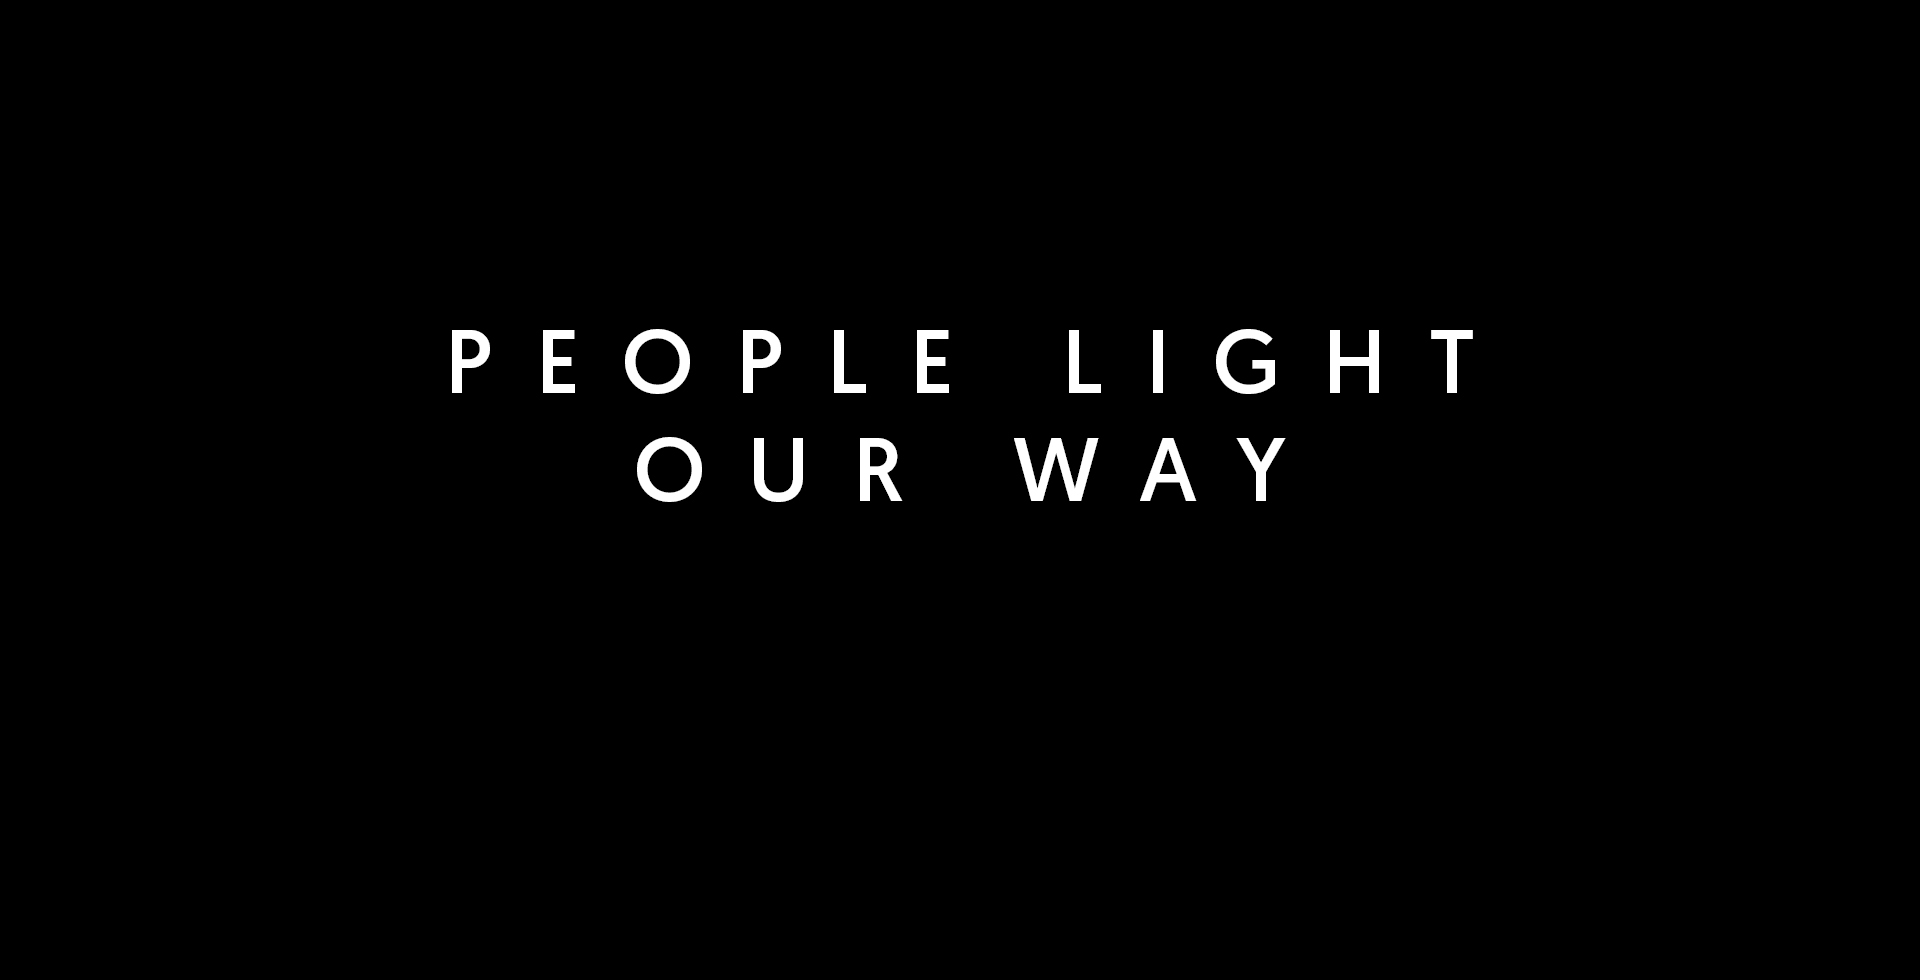 People light our way